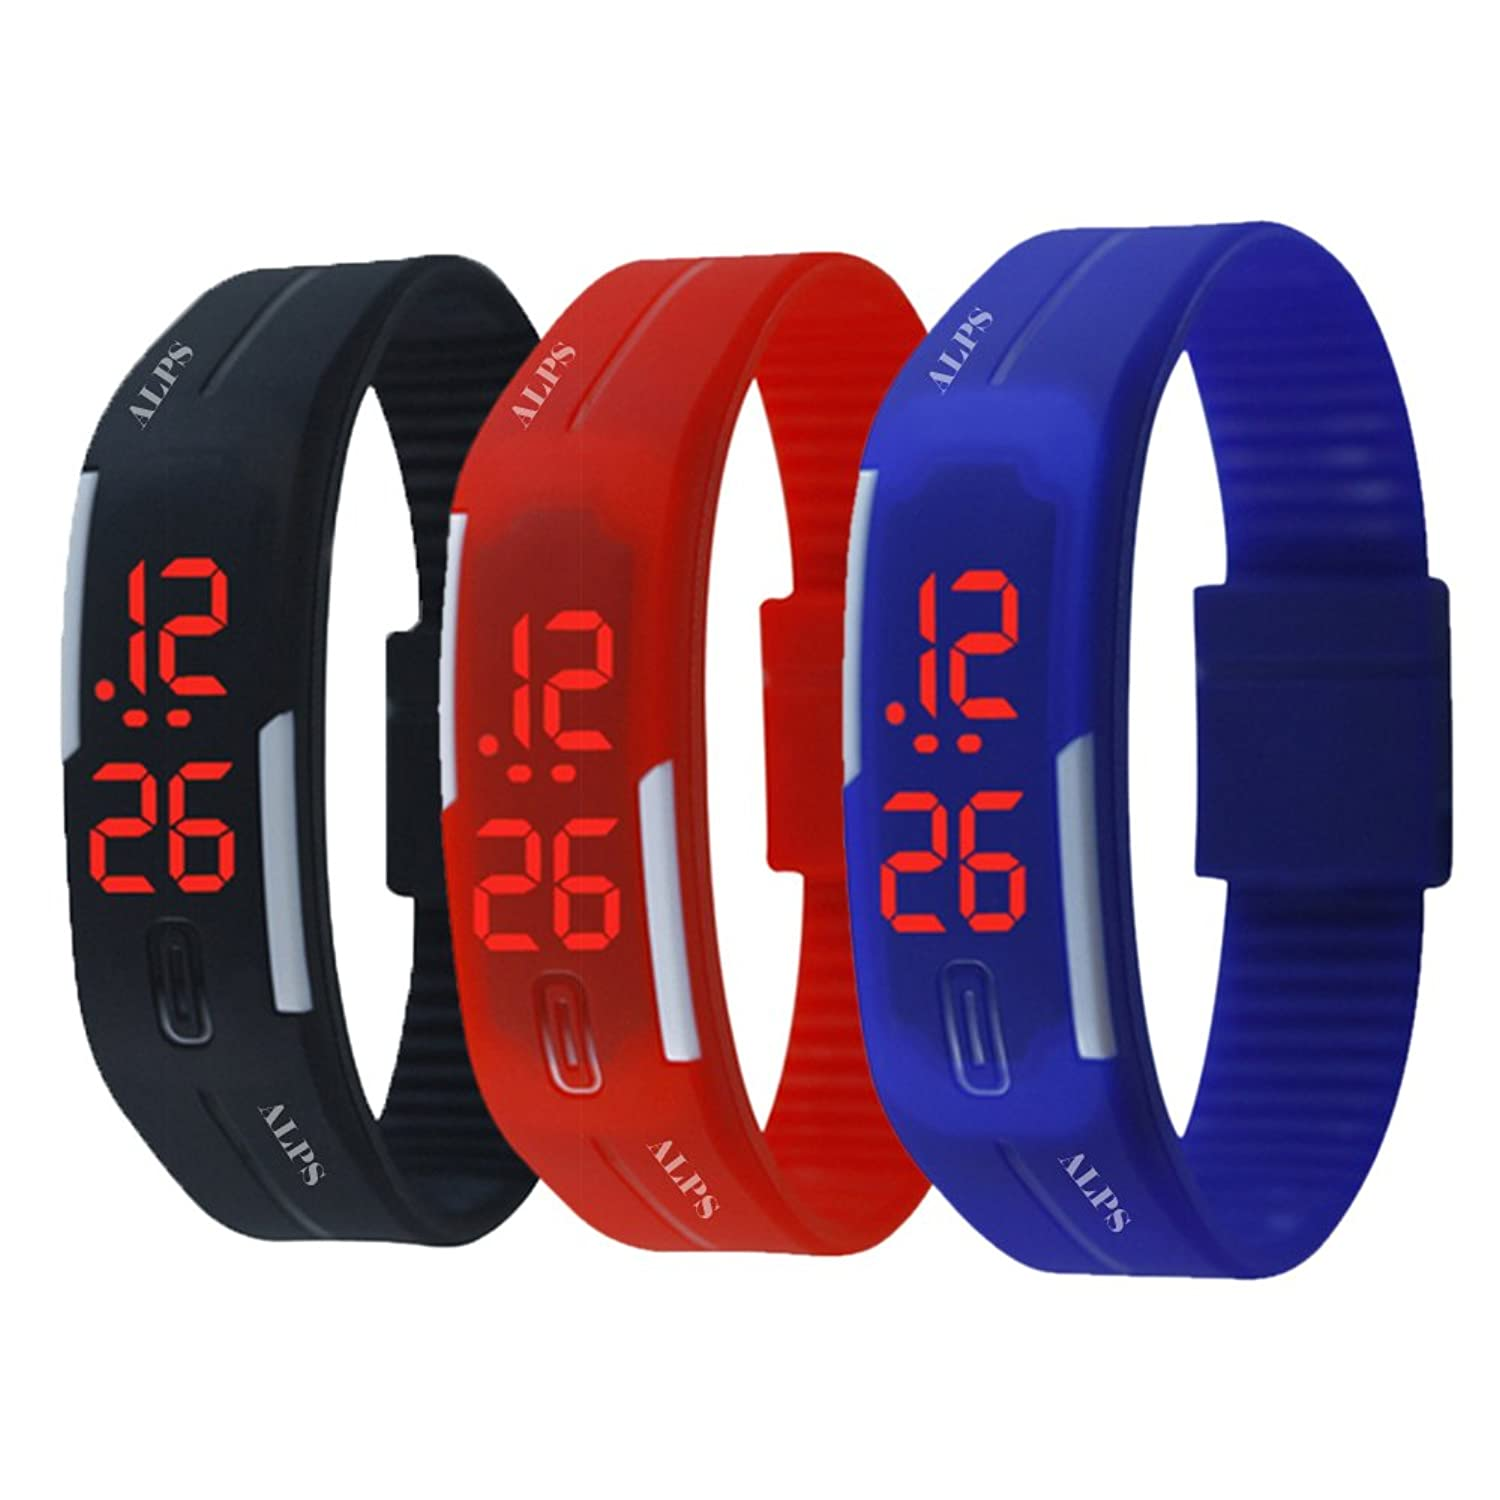 ALPS New Digital Display Silicone Band Touch Screen Sports LED Watch Bracelet (3 Pack)